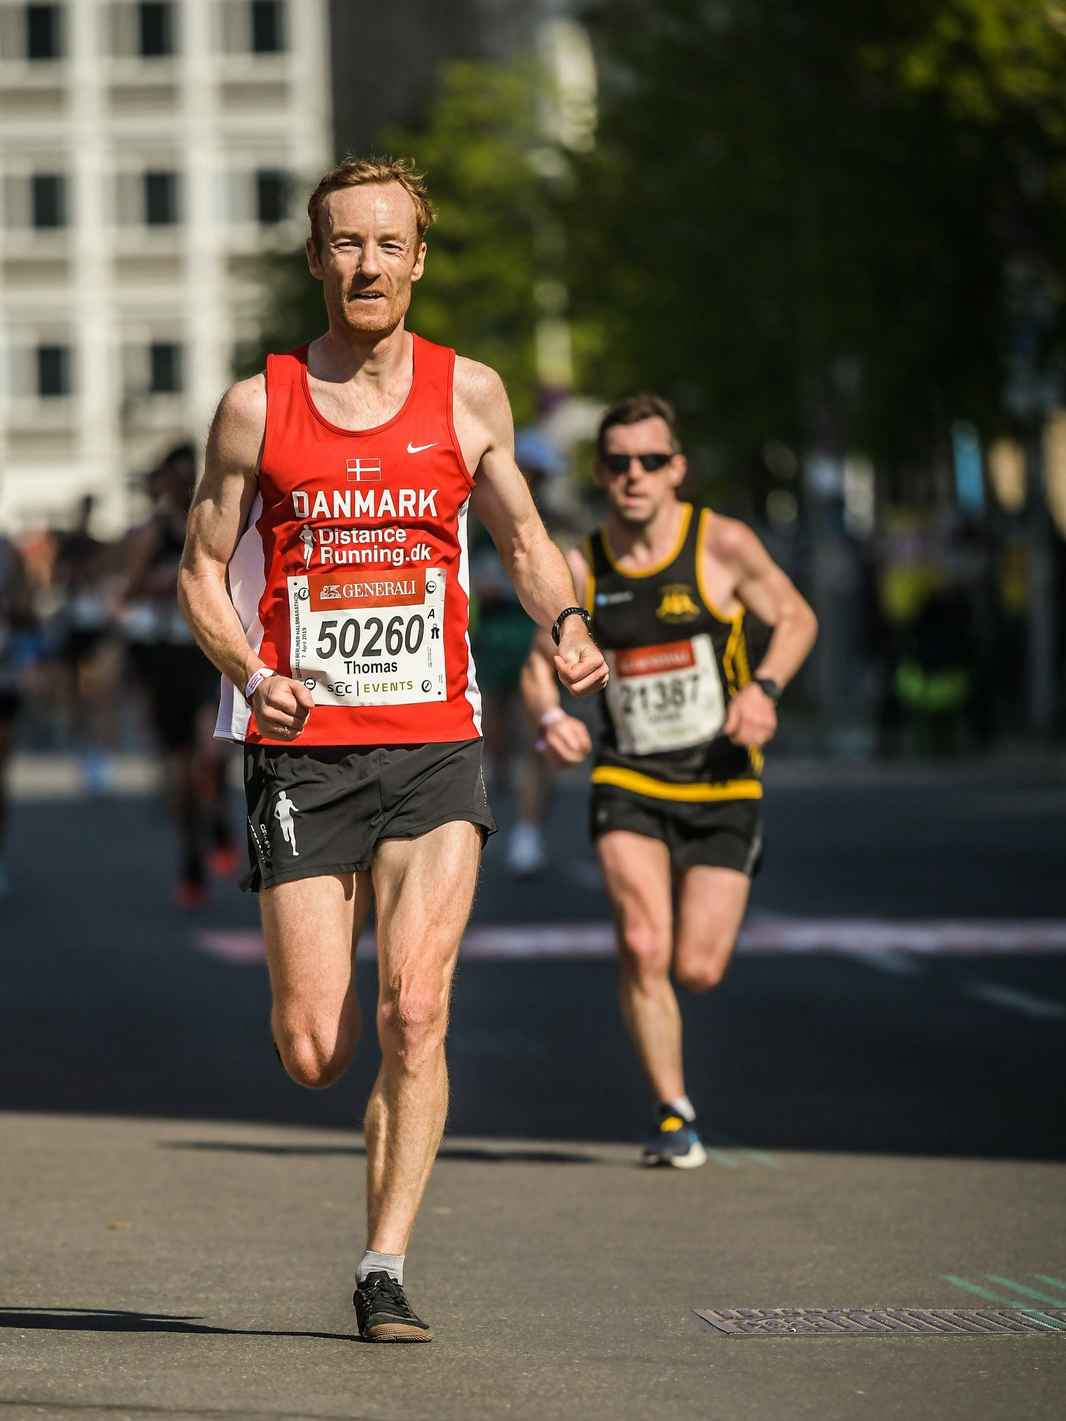 Tved20k_BerlinHalf.jpg